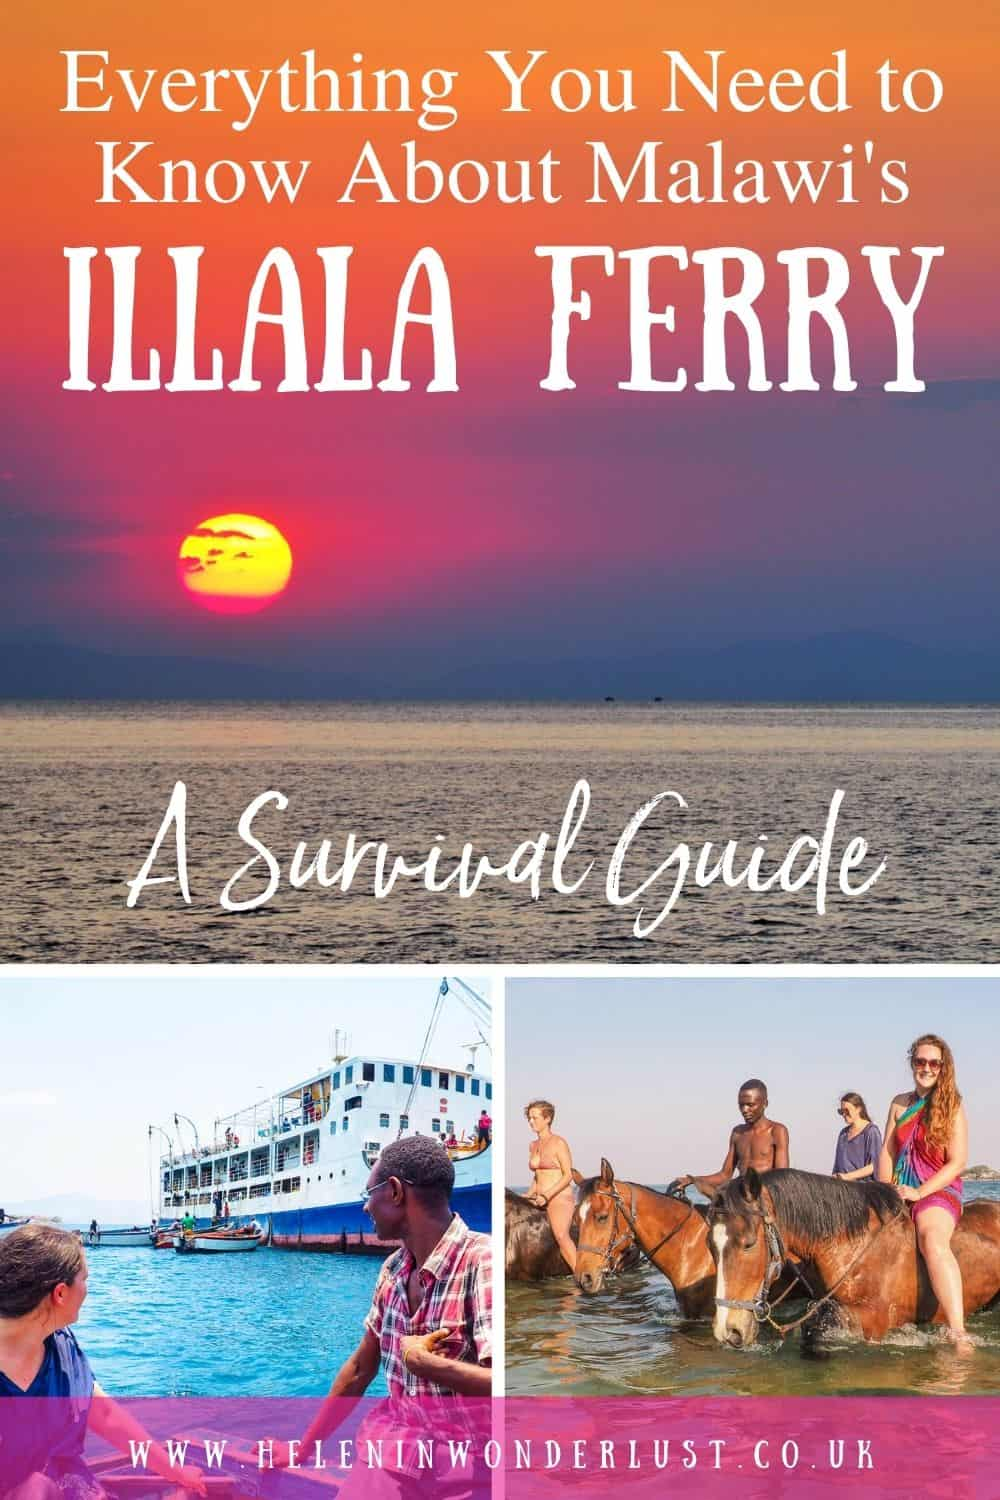 Everything You Need to Know About Malawi's Ilala Ferry